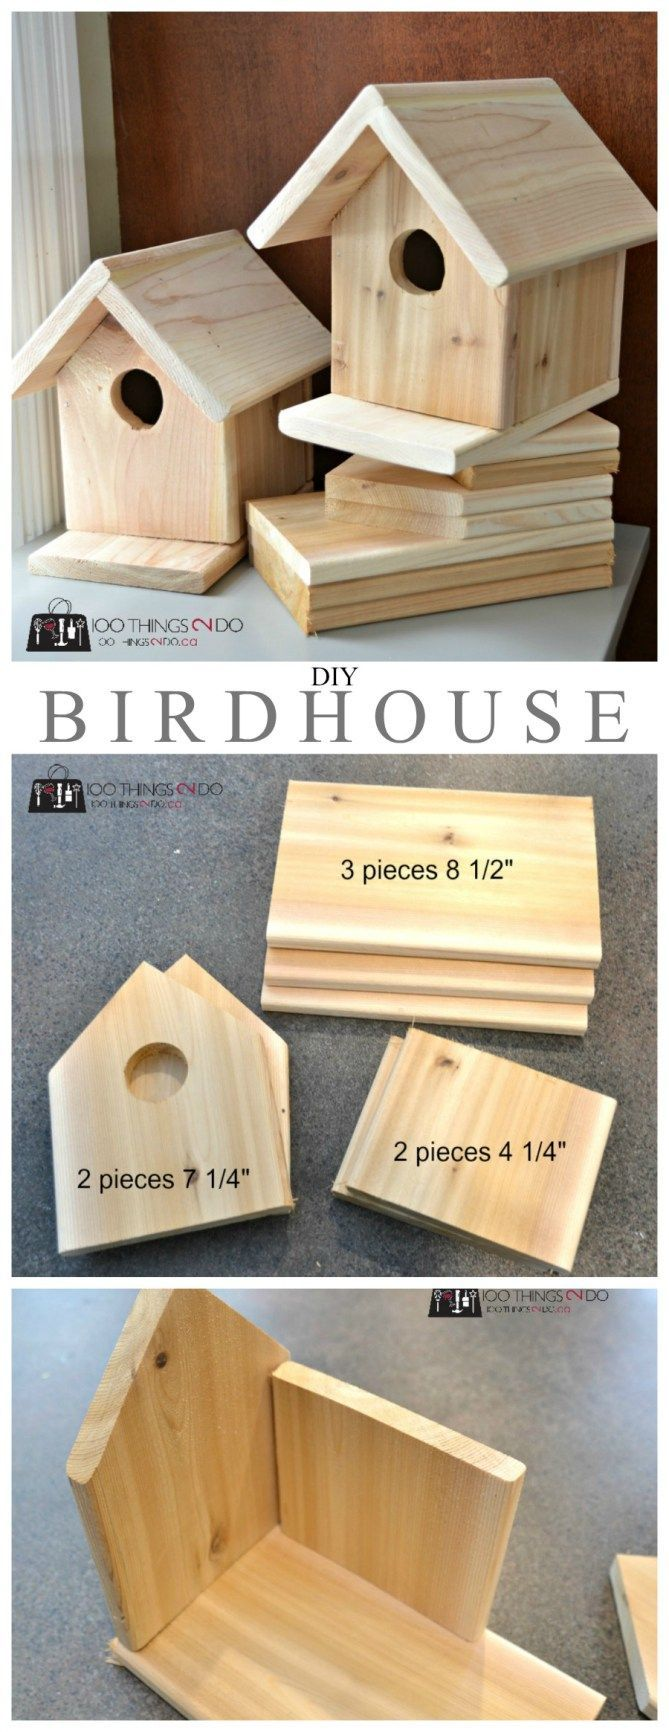 Photo of Teds Wood Working – DIY birdhouse – only $3 to build and a great project for bot…